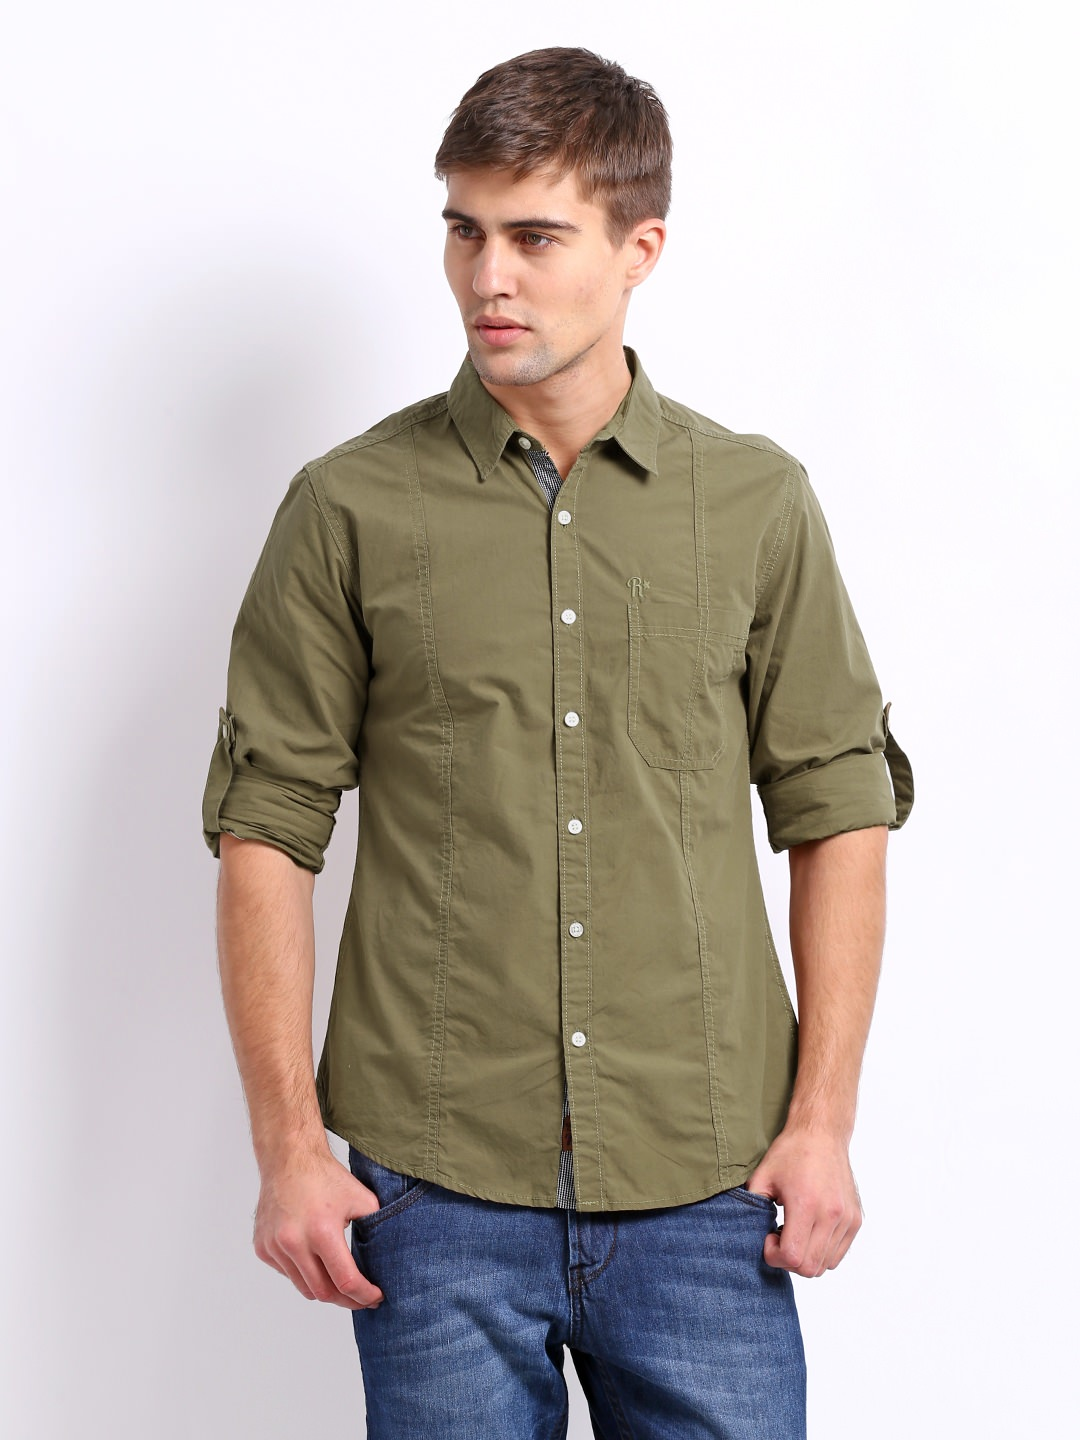 Buy Roadster Slim Fit Casual Shirt at Rs.749